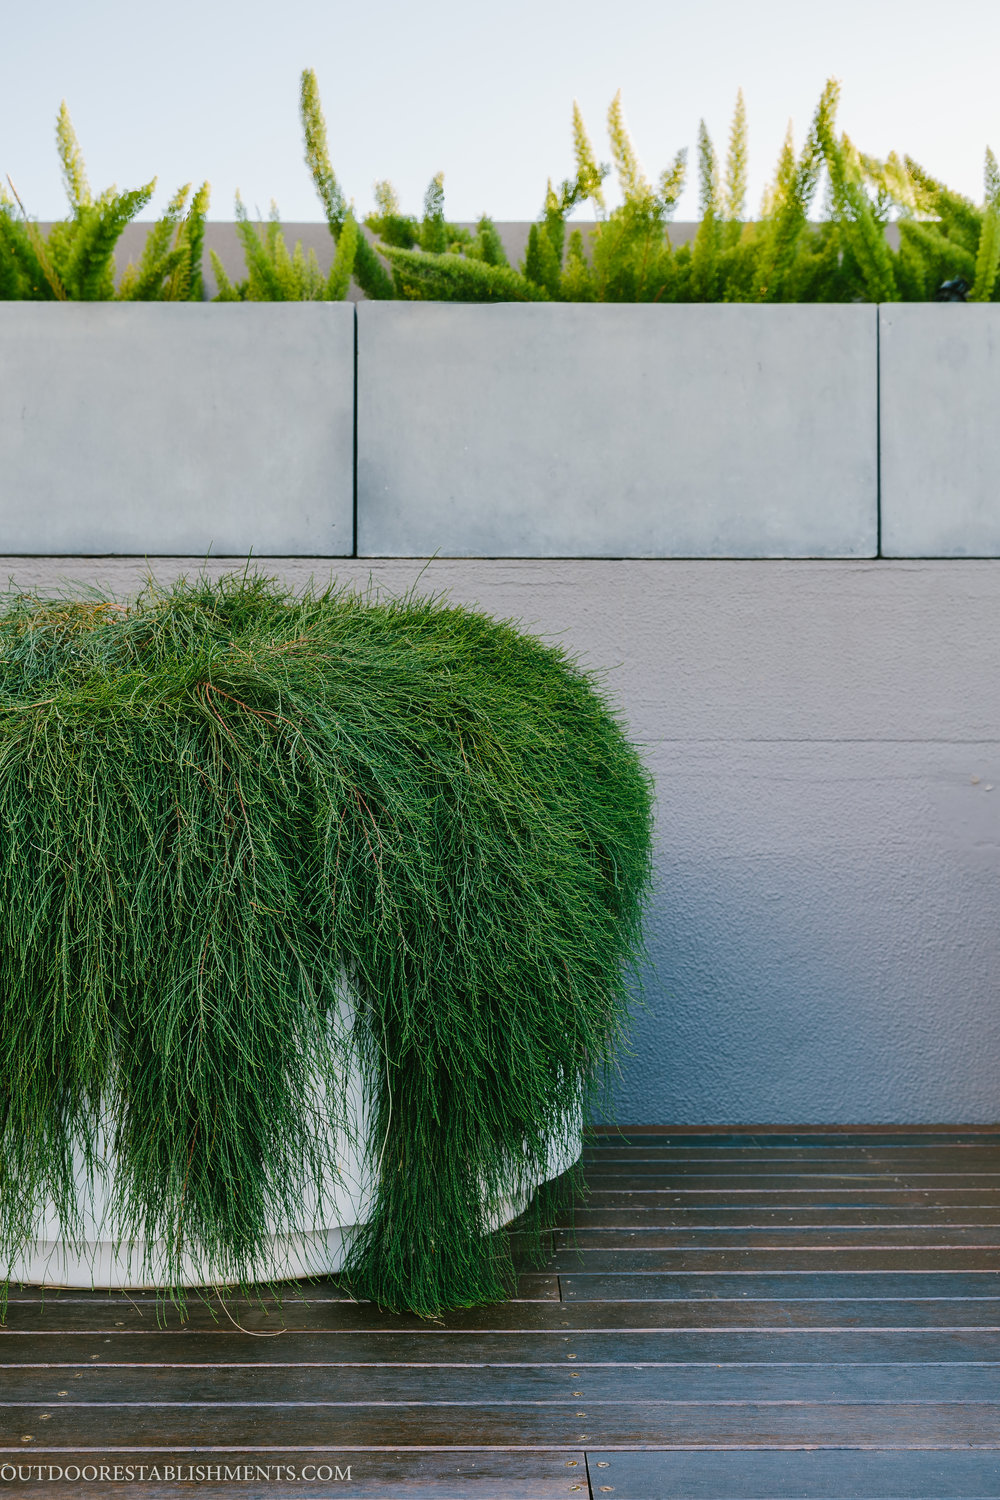 Rooftop garden planting design Outdoor Establishments